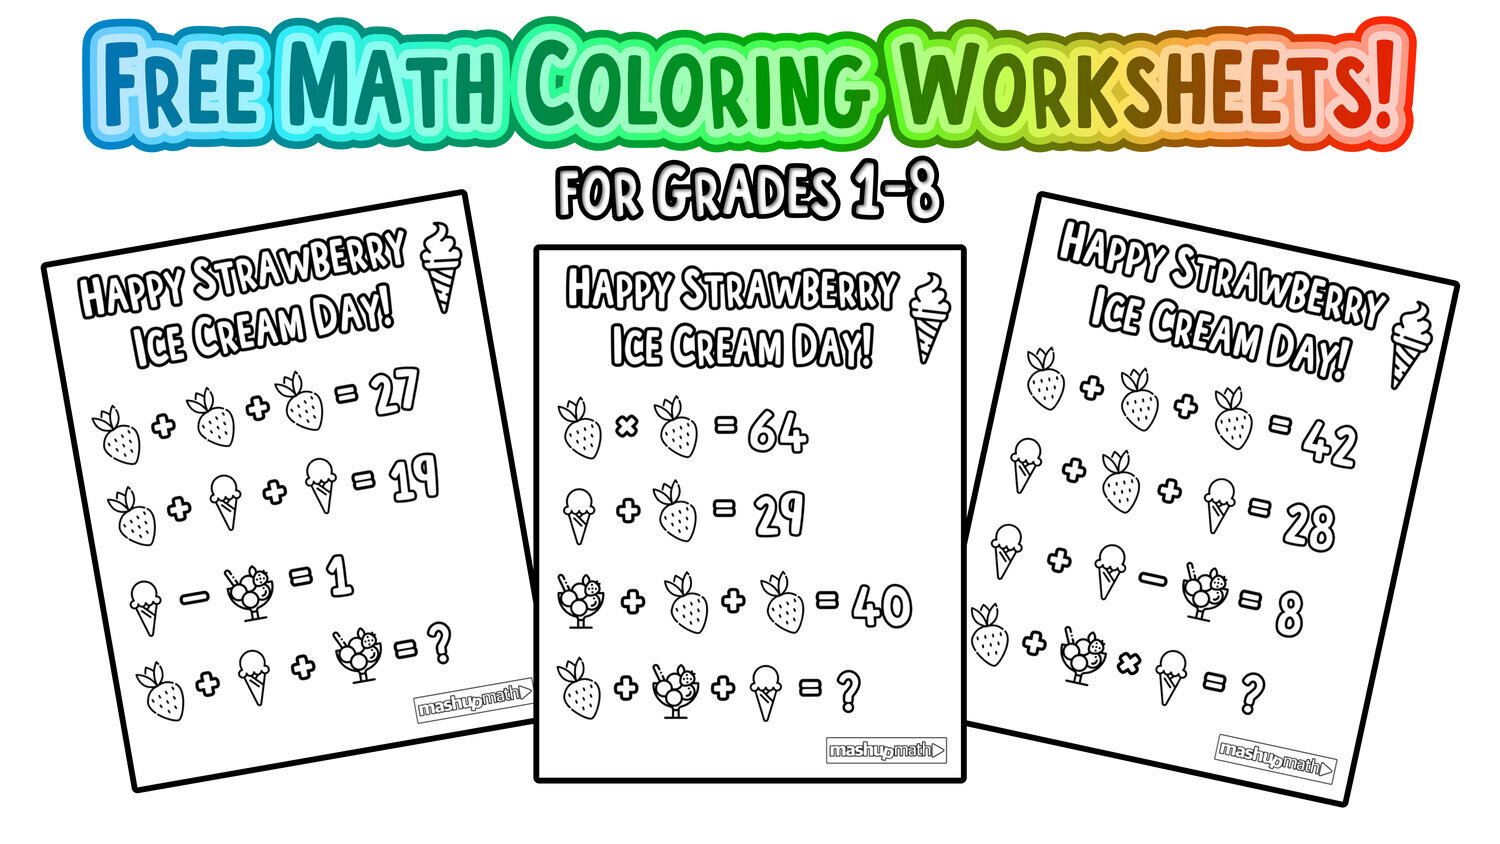 The Best Math Worksheets For 1st Grade Students — Mashup Math